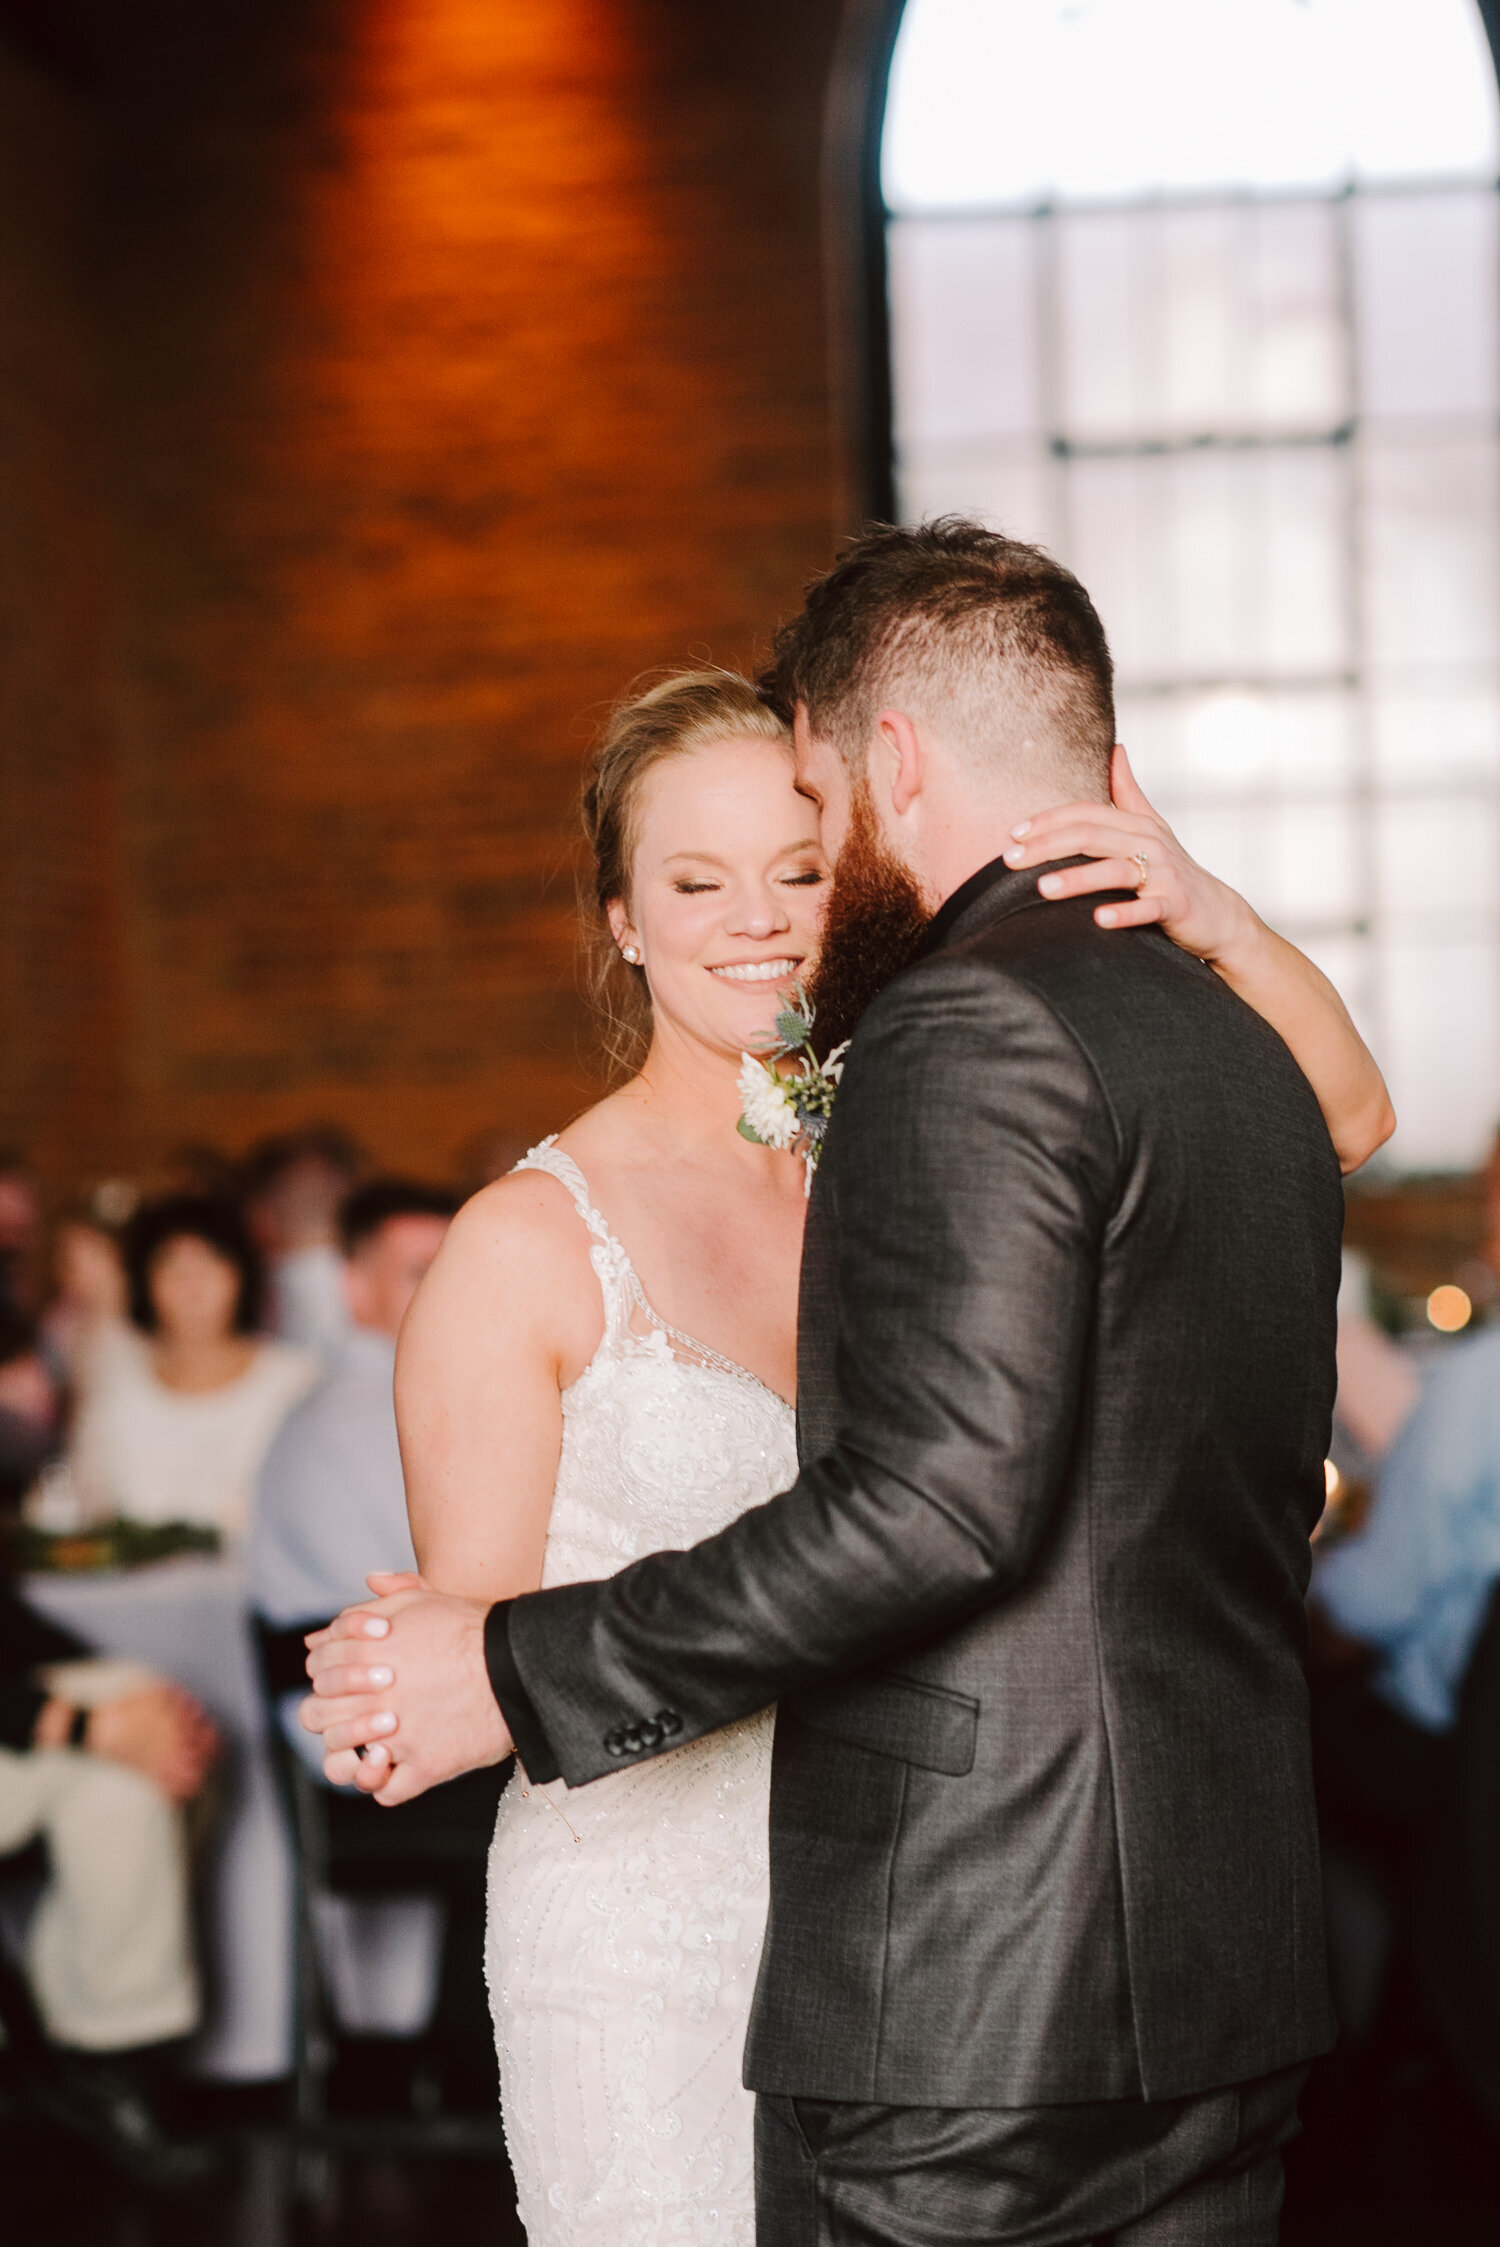 clementine-nashville-wedding-32